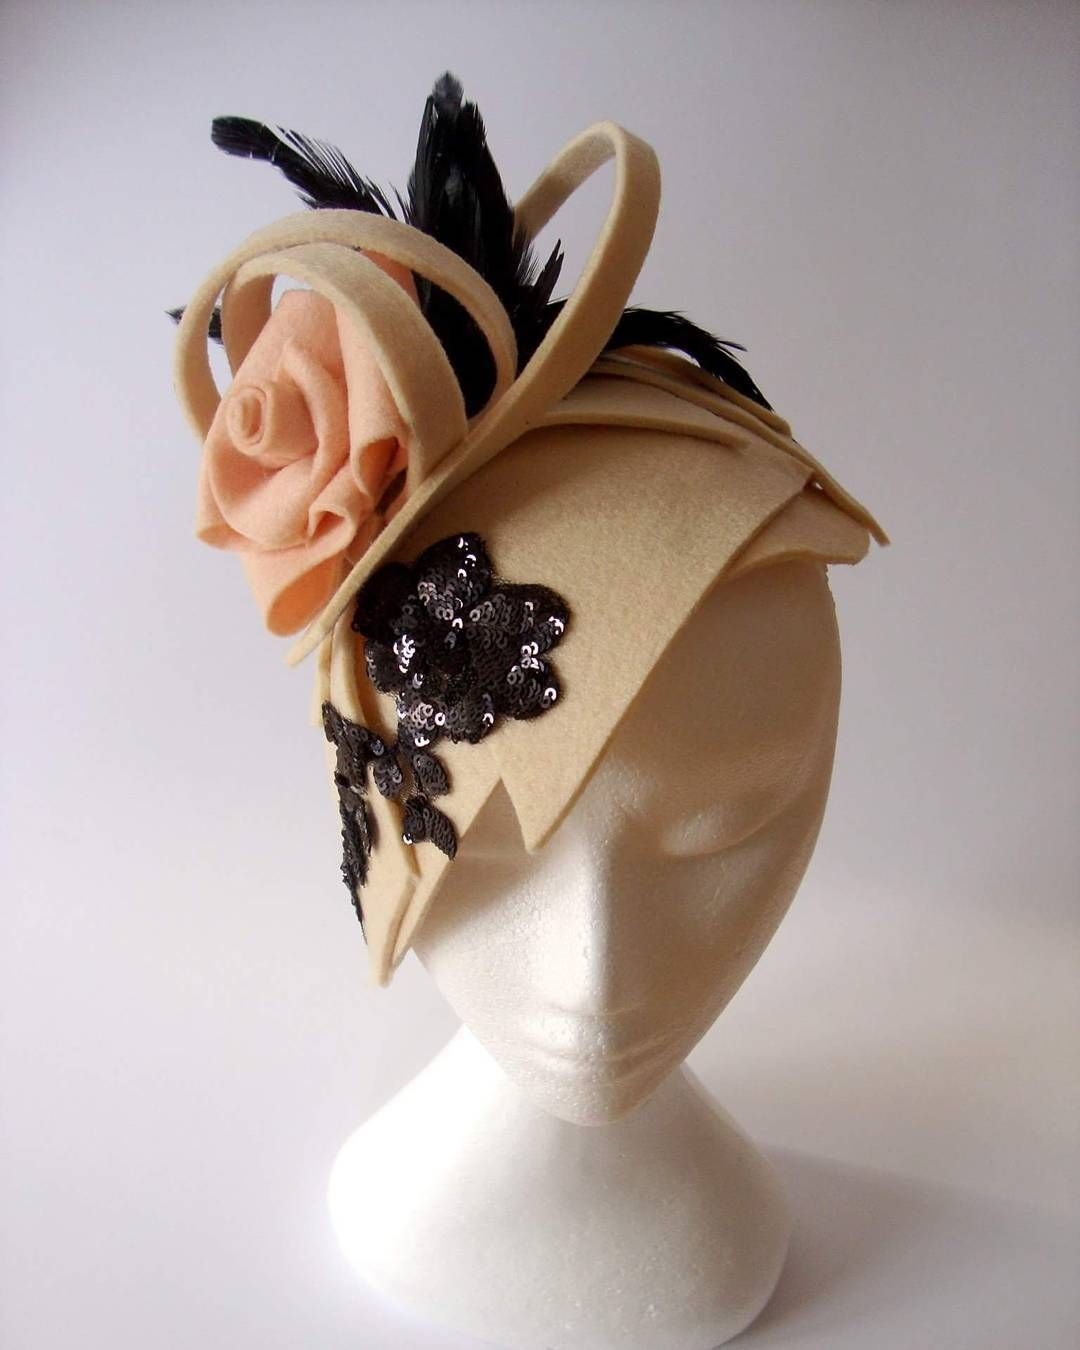 Costume & Millinery Designer www.neven-mihic.com  WEB SHOP - ETSY (Follow link: http://ift.tt/1NnQgED) #hat#beautiful#beauty#daily#photo#millineryflowers#hautecoutre#moviestars#celebration#weddingdress#weddingday#weddings#interierdesign#homeinterior#exhibitionist#metopera#ascot#pink#opera#musicaltheatrelife#luxurylife#feathers#favorite#etsyseller#etsyshop#tokyofashionweek#tokyofashion#vjenčanje#parisstyle#rose by neven.mihic